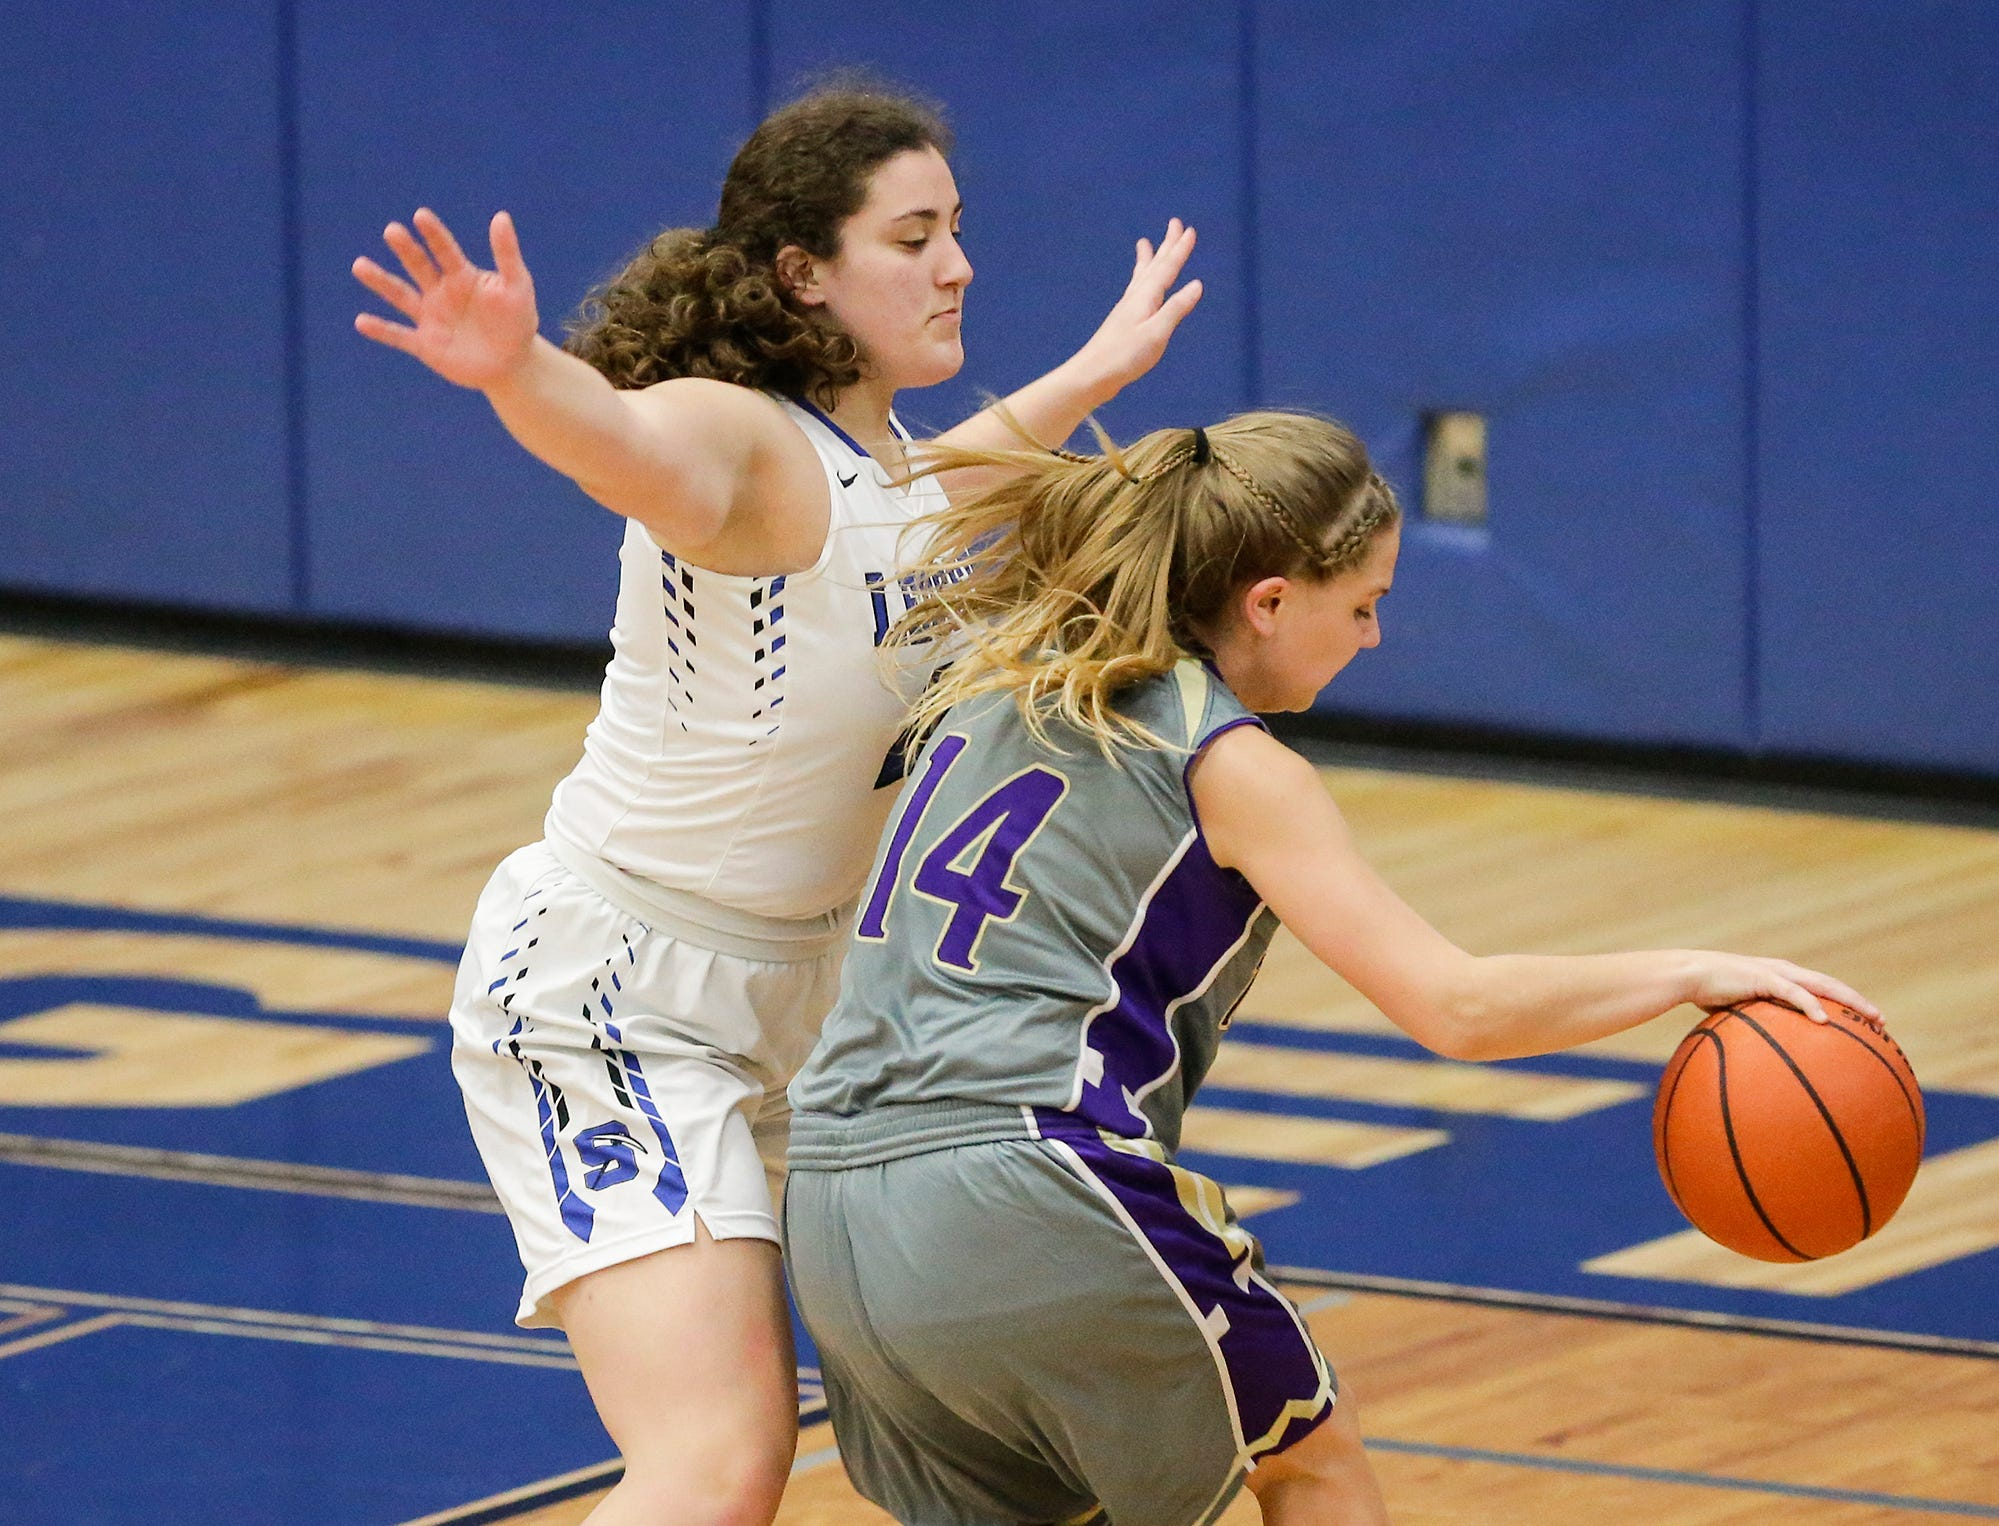 St. Mary's Springs girls basketball's Cecelia Rodriguez defends against Two Rivers High School's Andrea Henrickson during their game Friday, November 16, 2018 in Fond du Lac. Doug Raflik/USA TODAY NETWORK-Wisconsin